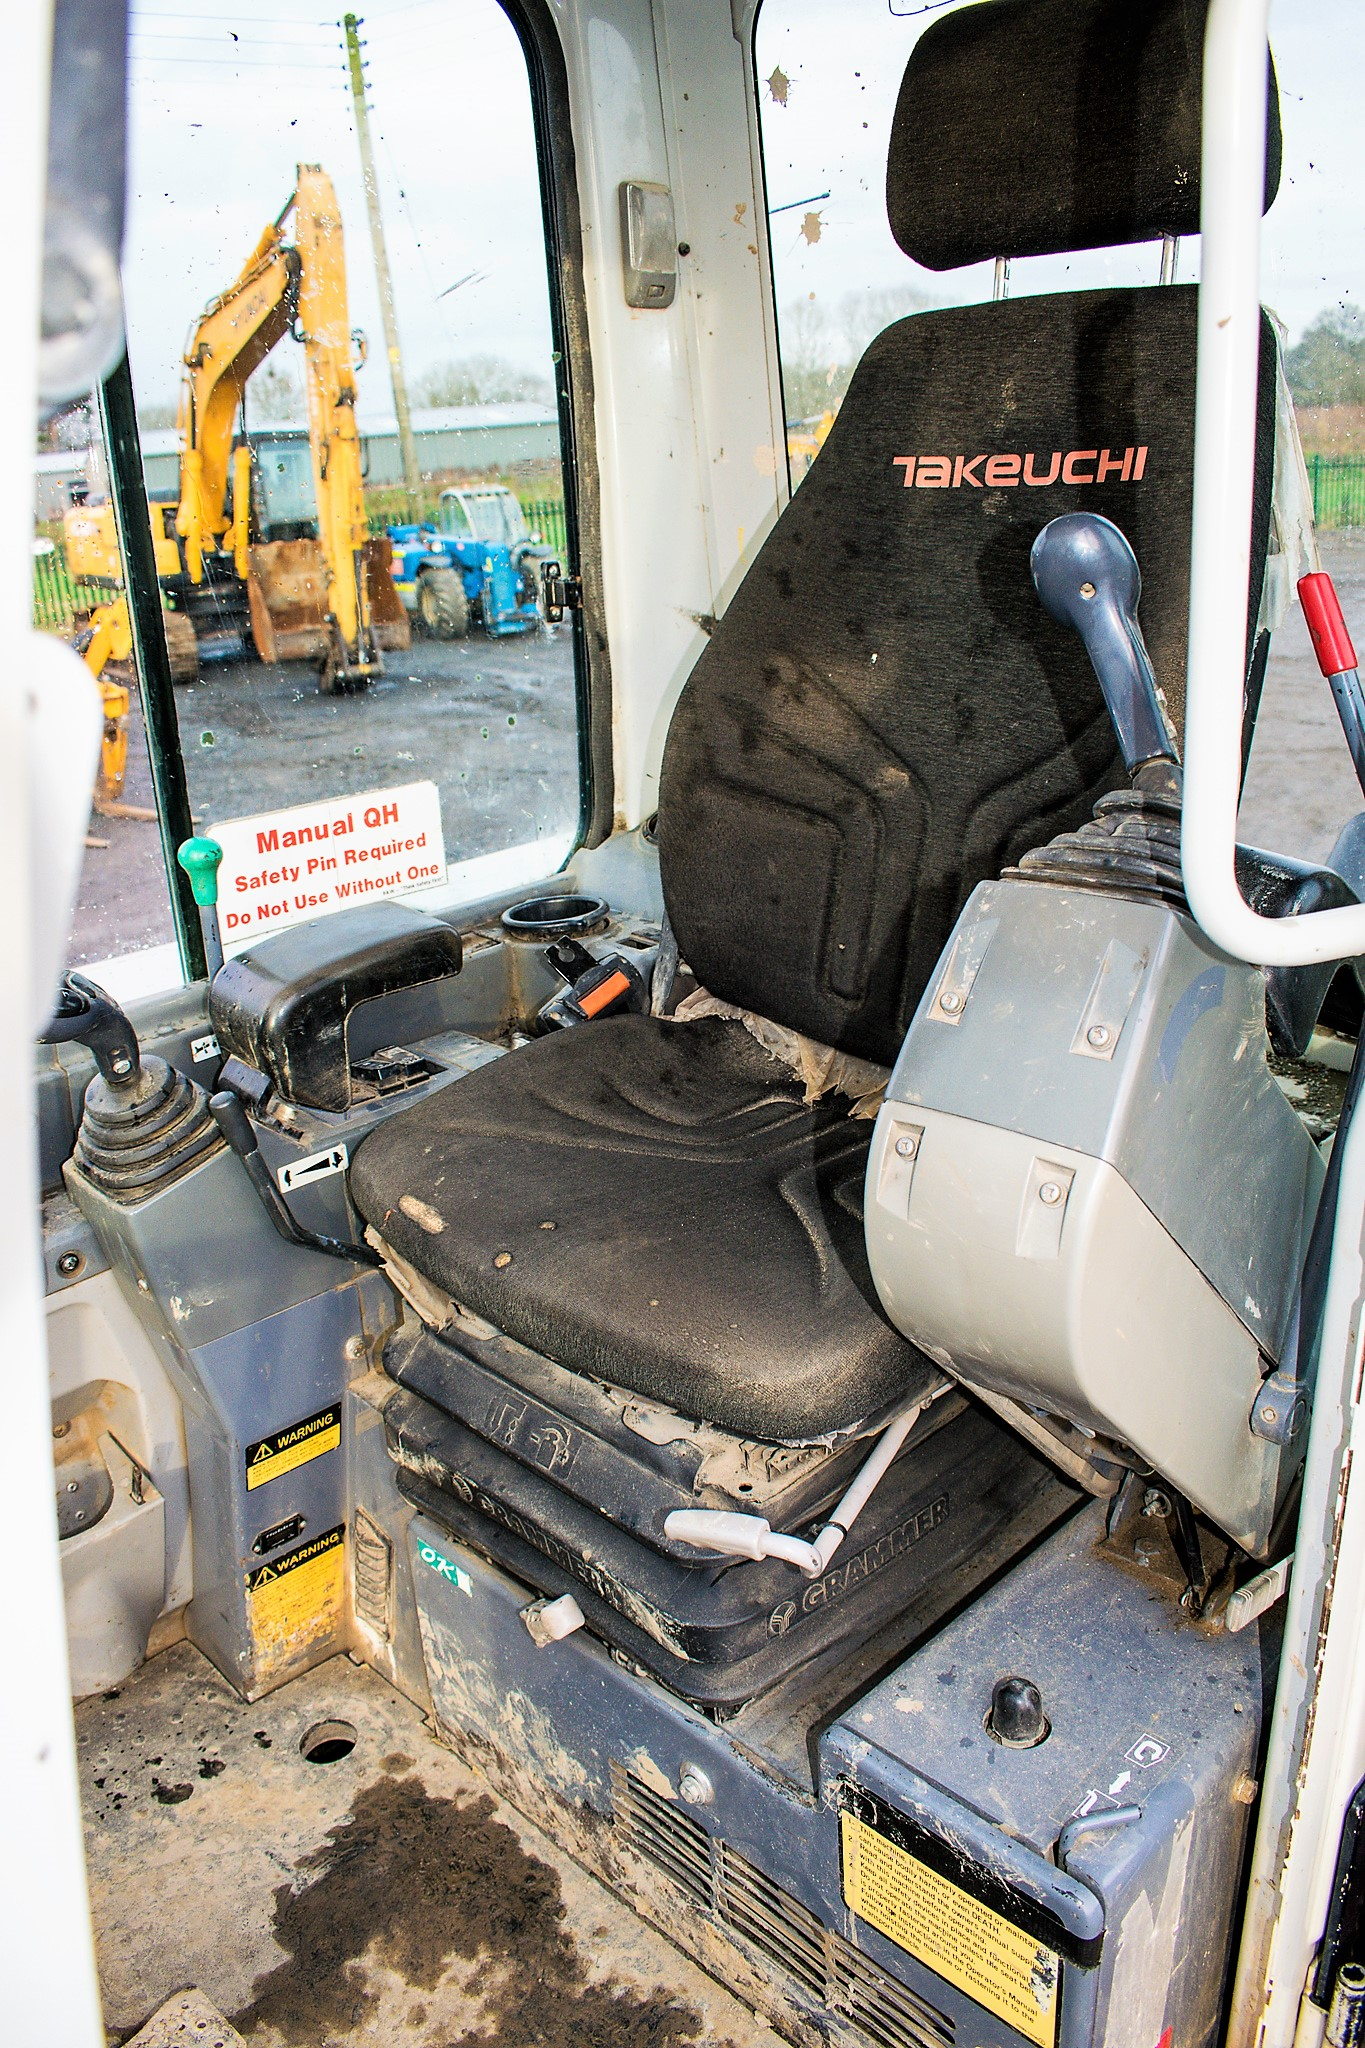 Lot 27 - Takeuchi TB250 5 tonne rubber tracked excavator Year: 2010 S/N: 125000210 Recorded Hours: 4513